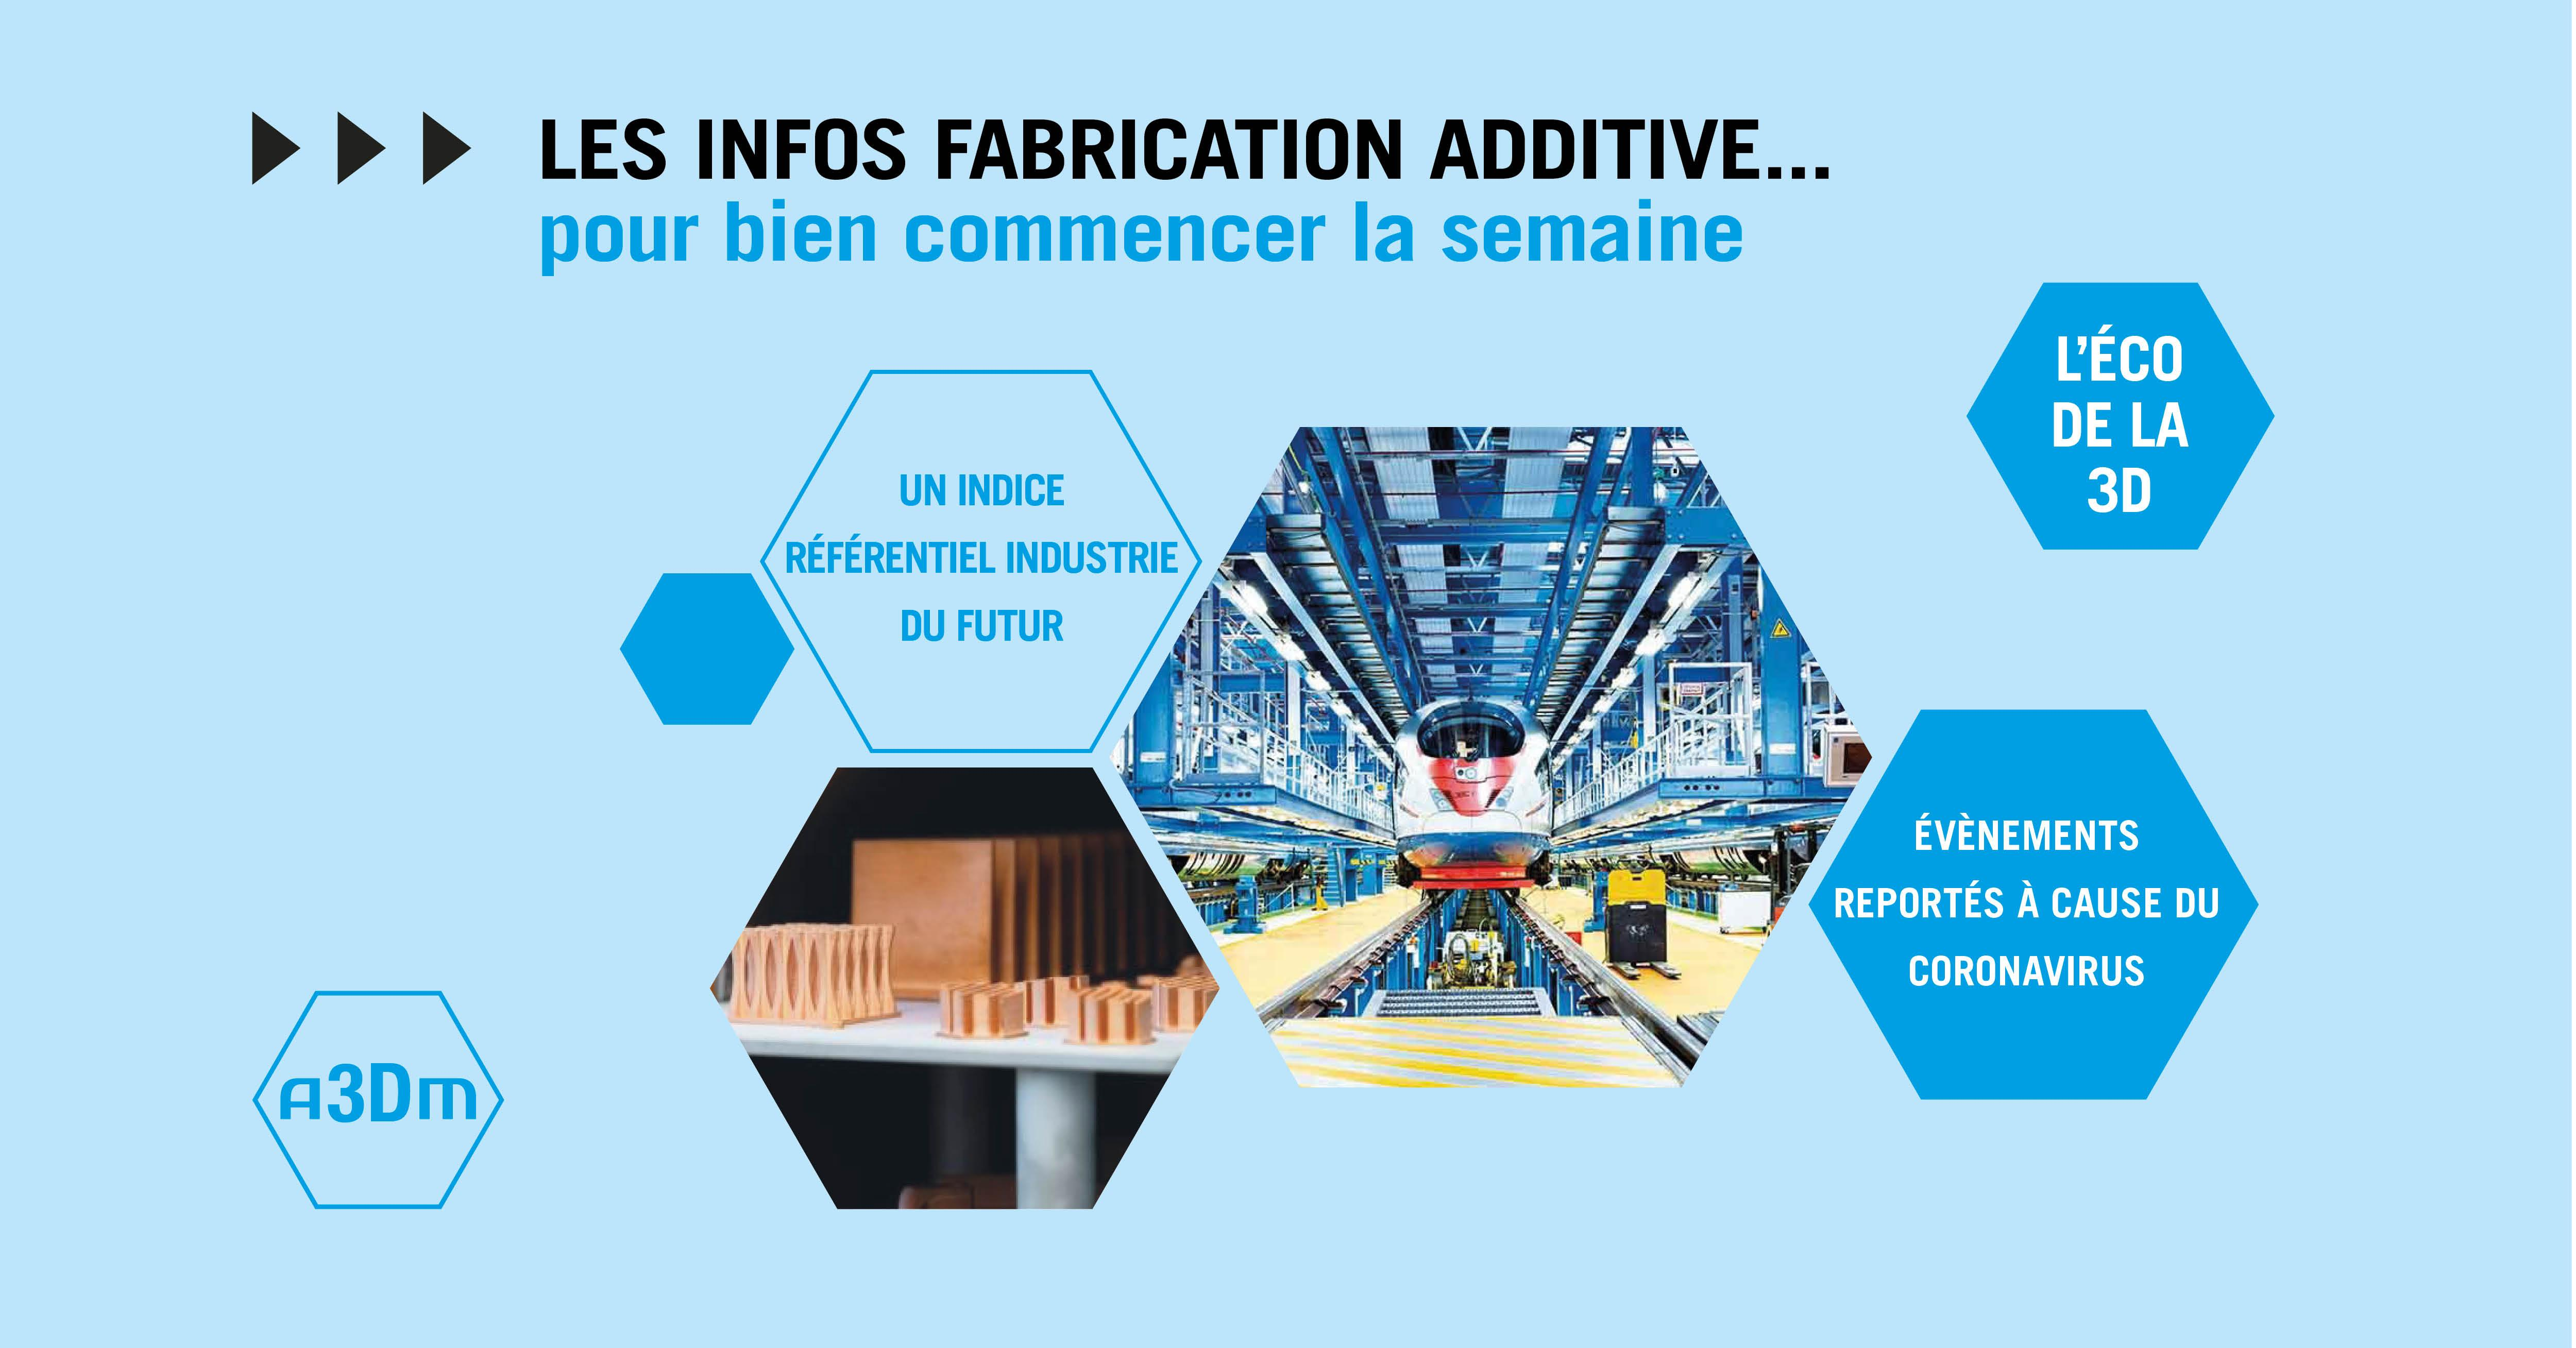 Infos fabrication additive semaine 34